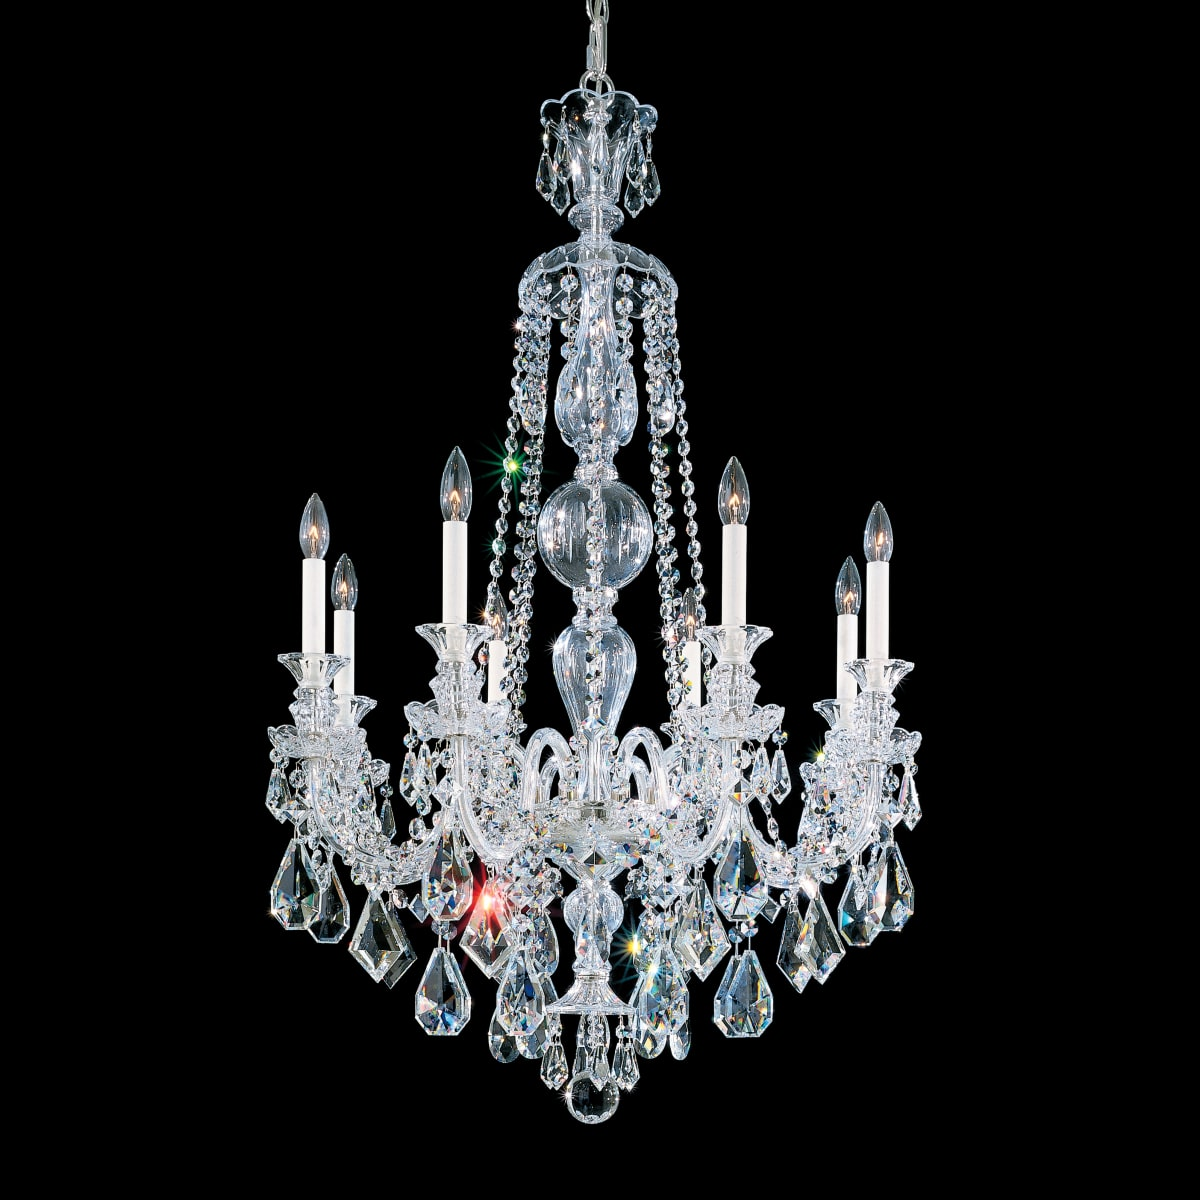 Schonbek 5707bk Jet Black Hamilton 8 Light 29 Wide Crystal Chandelier With Black Swarovski Heritage Crystals Lightingshowplace Com